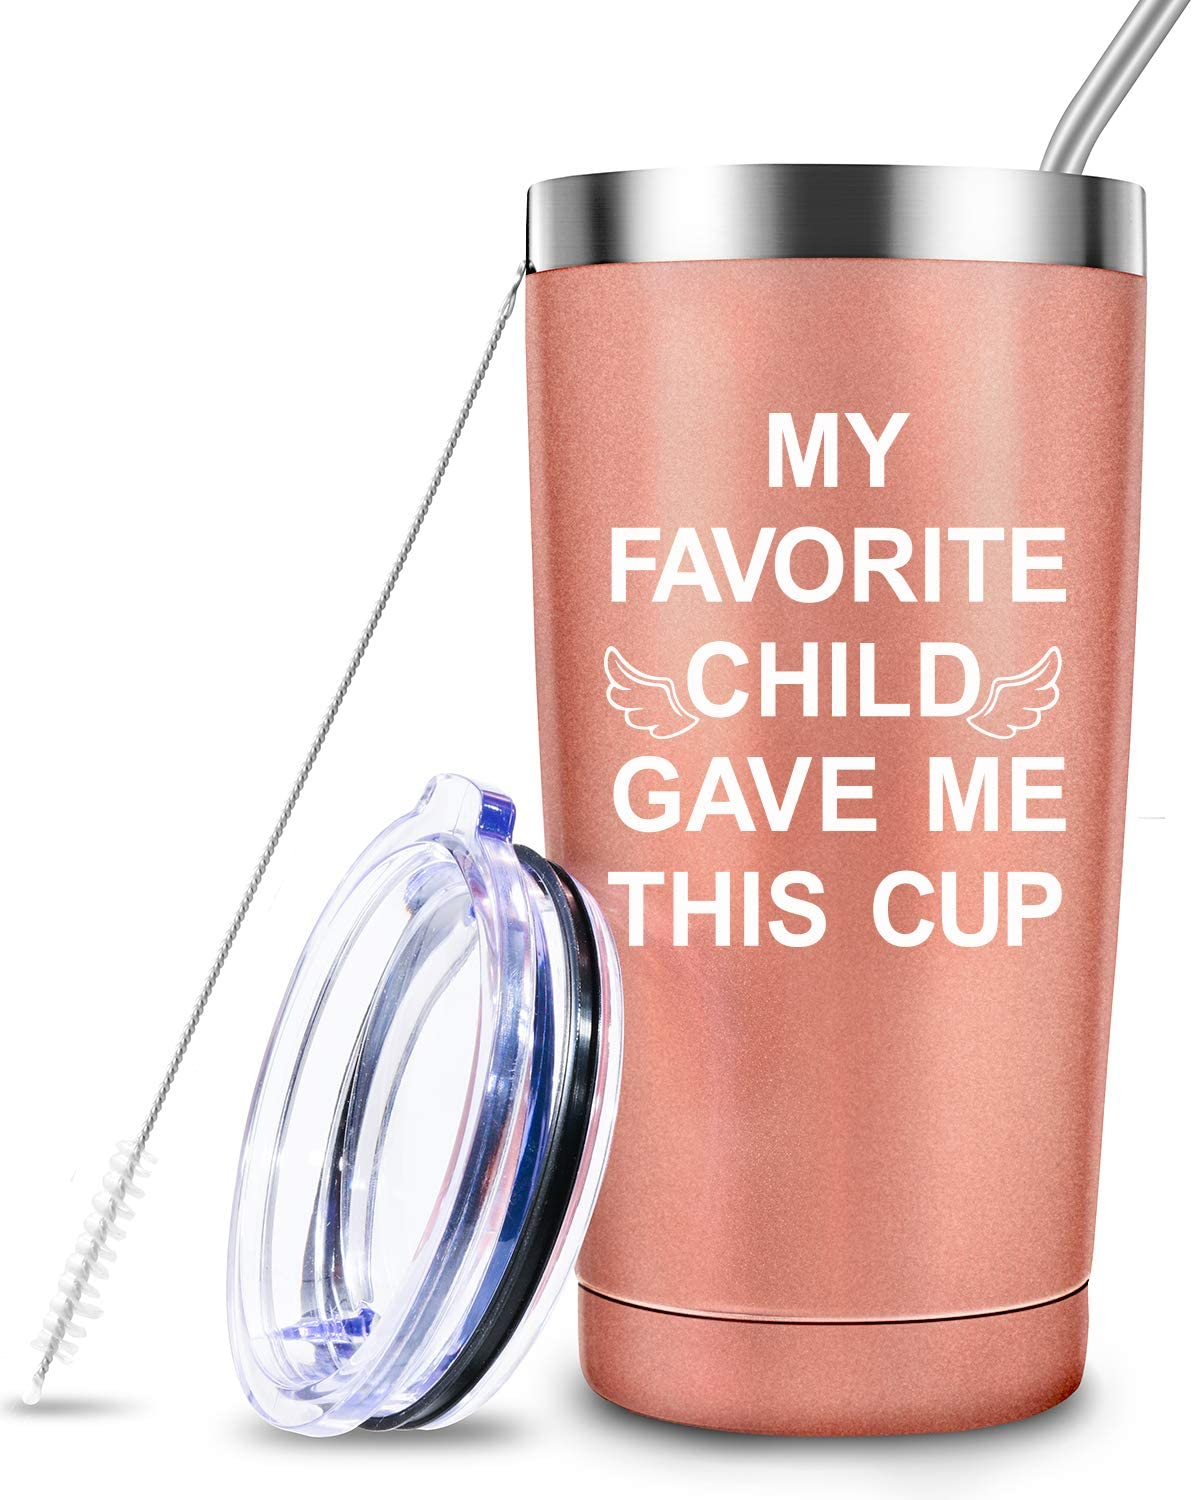 Kids For Parents Present Idea Mom Gifts Birthday Gift For Mom From Daughter Son 20 Ounce Tumbler For Grandma Mama Women My Favorite Child Gave Me This Cup Storage Organization Travel